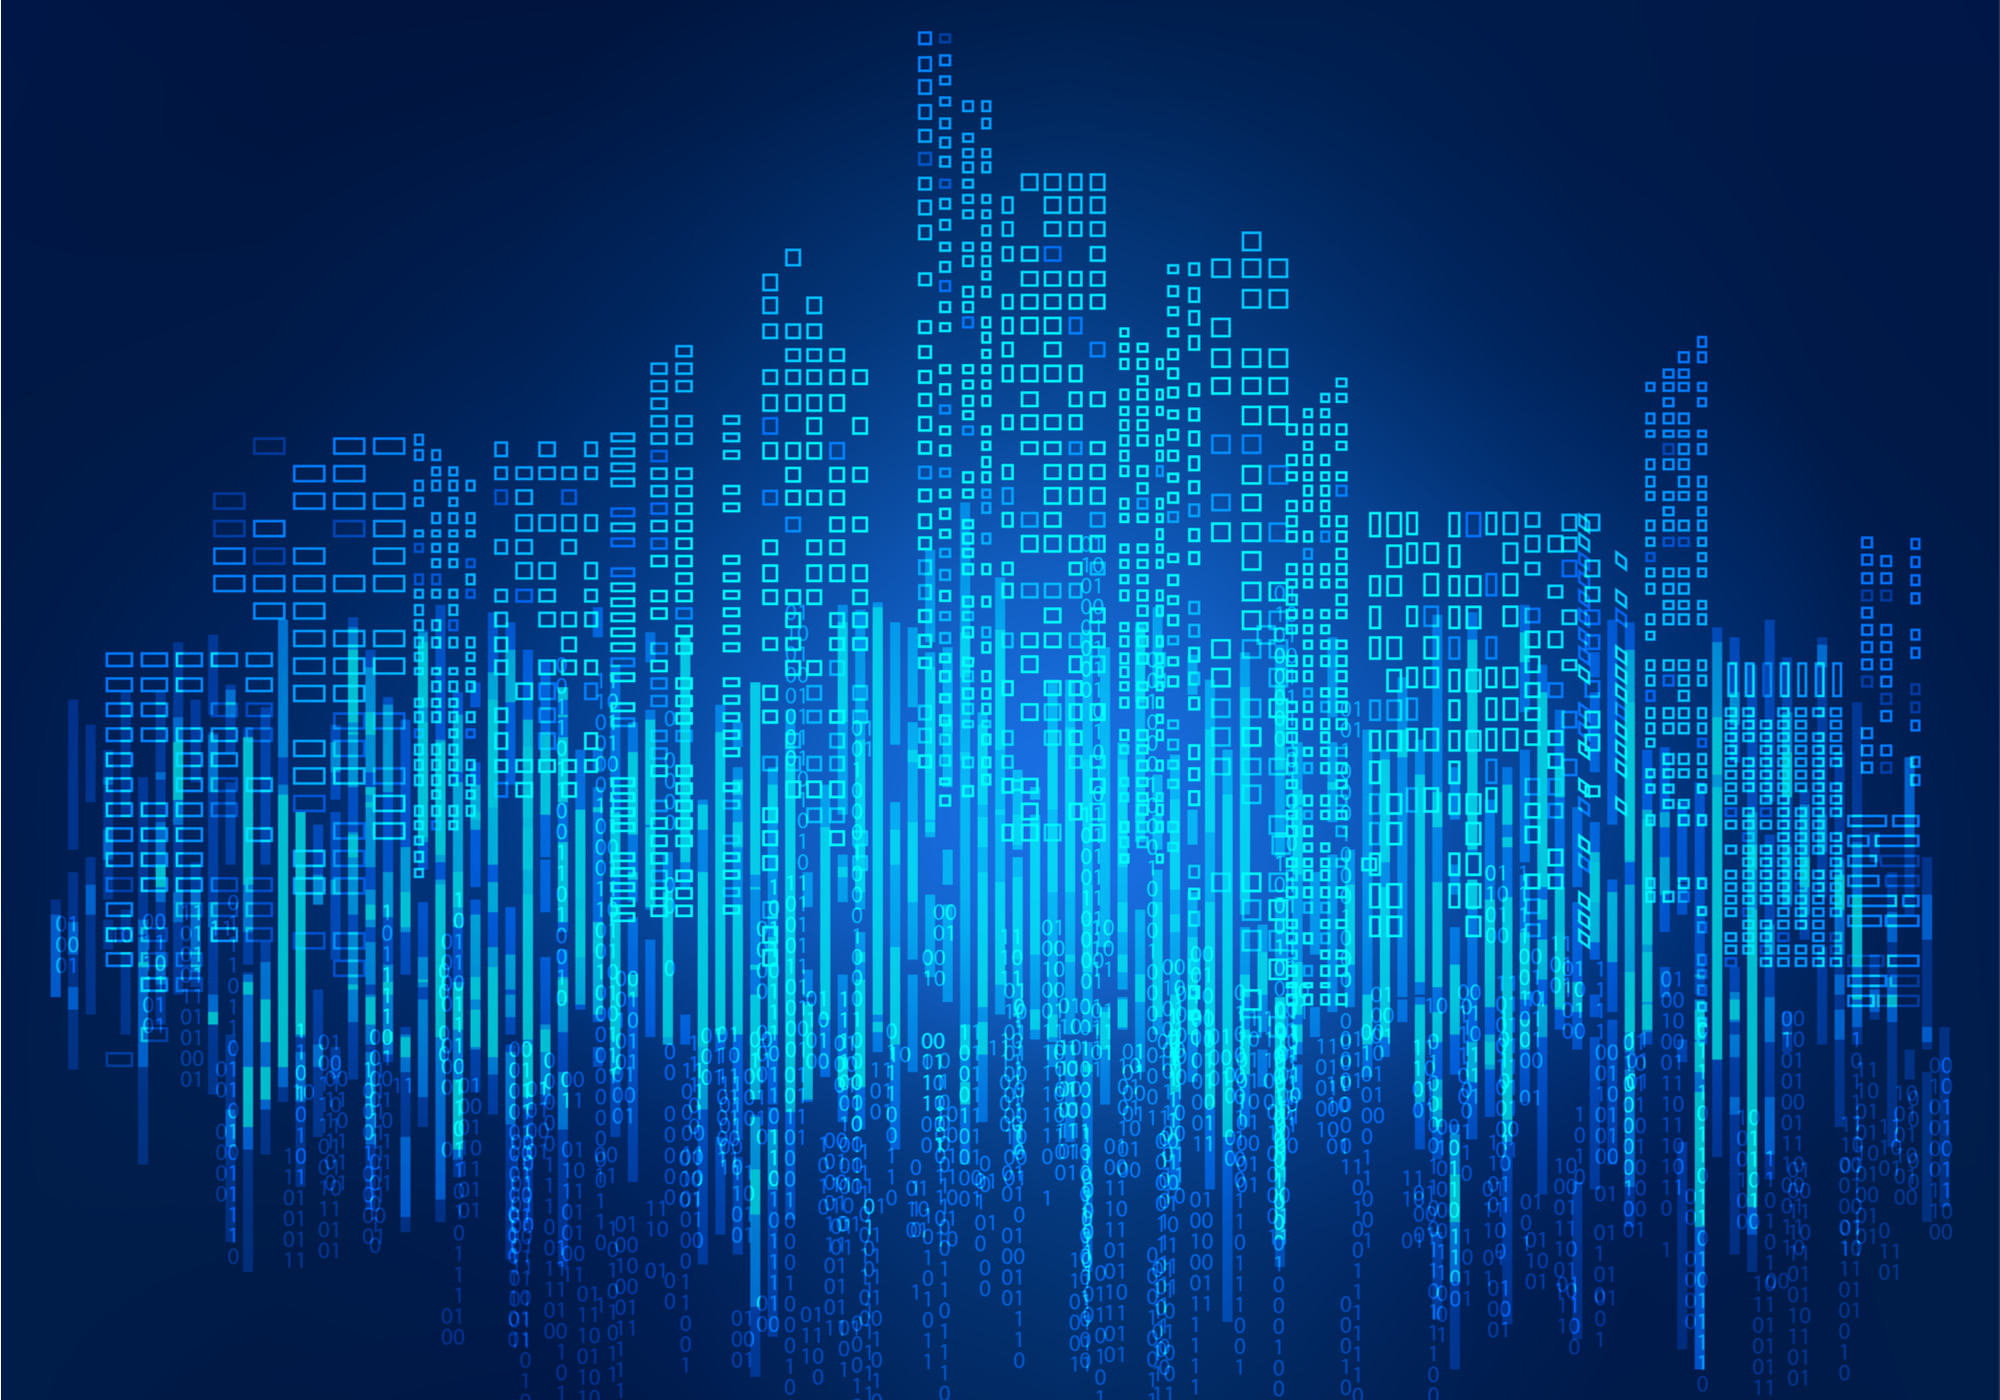 Businesses must focus on data's higher purpose in the new normal